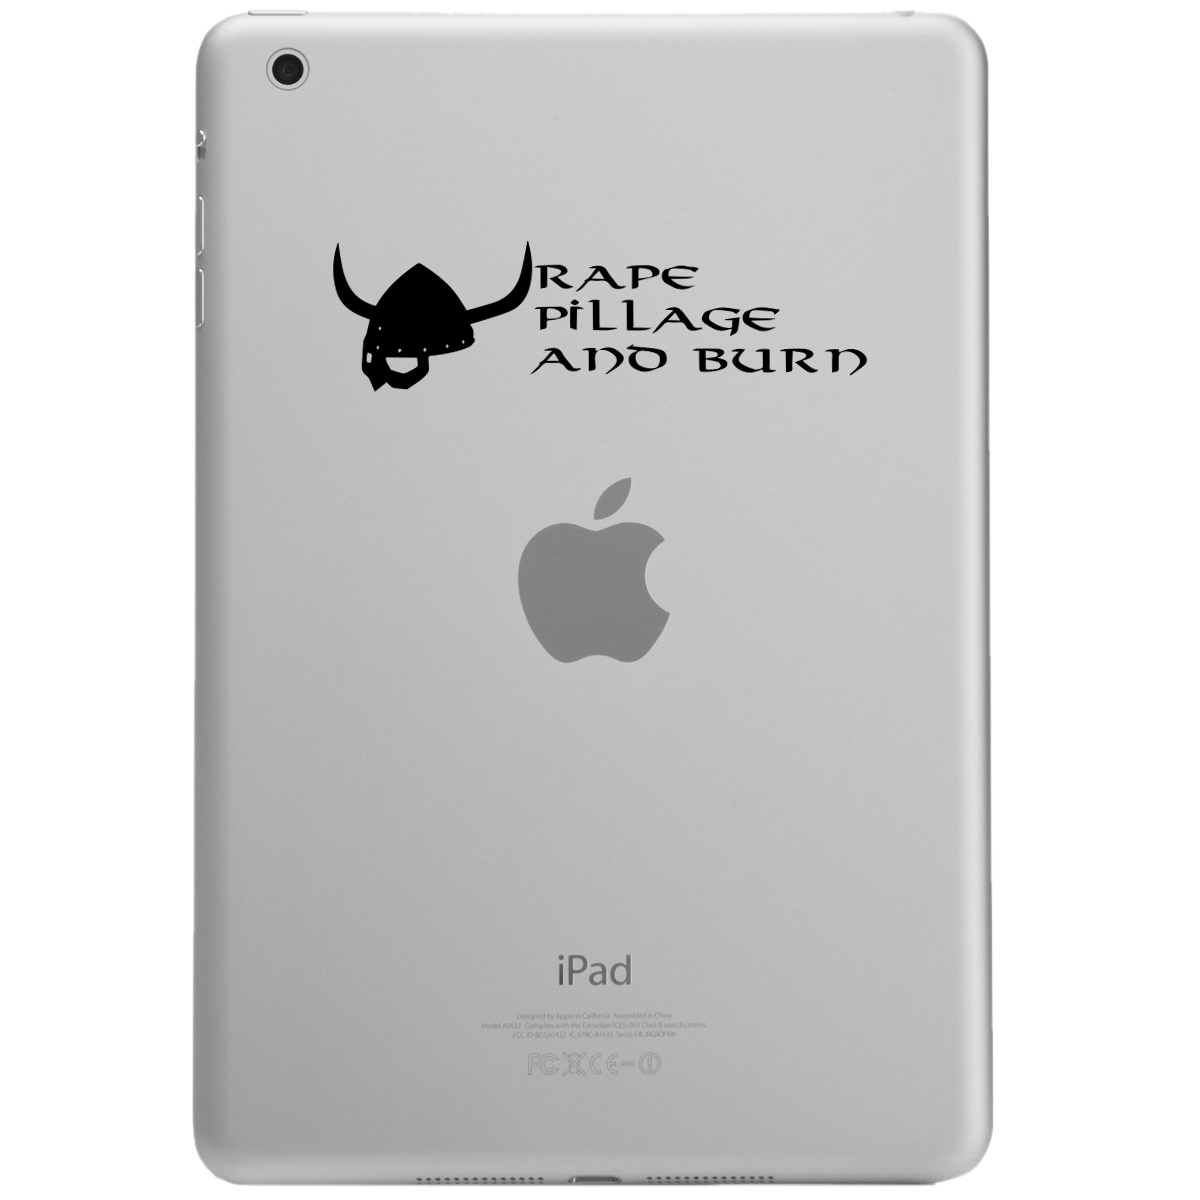 Funny Pillage Burn Viking iPad Tablet Vinyl Sticker Decal